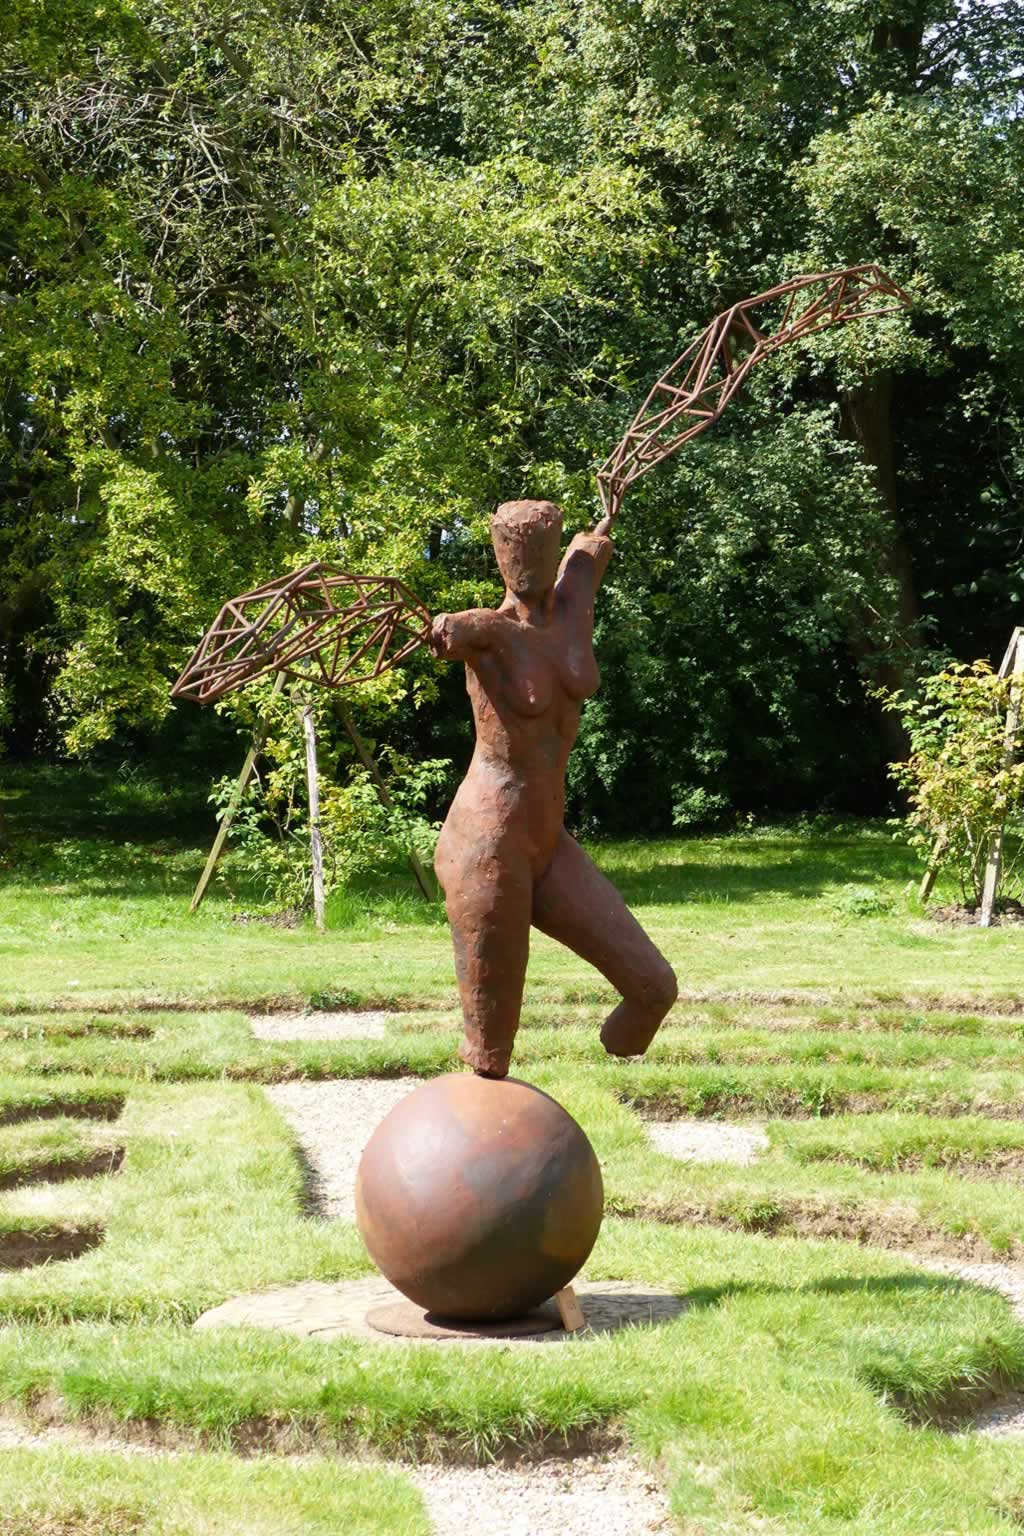 Arc I at Doddington Hall (abstract figurative sculpture) by sculptor Ian Campbell-Briggs